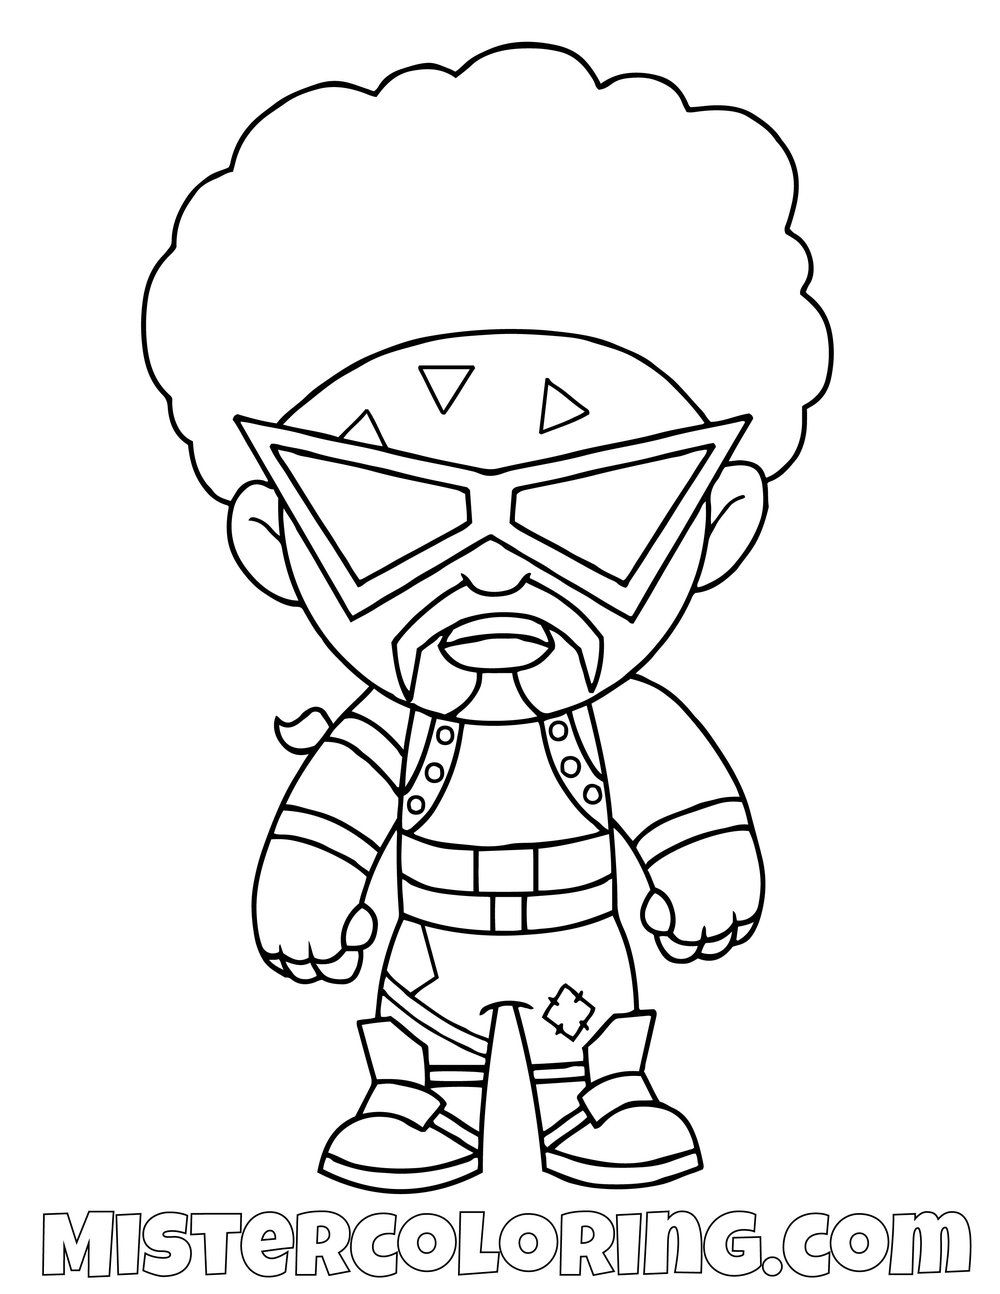 Free Funk Ops Chibi Fortnite Skin Coloring Page For Kids